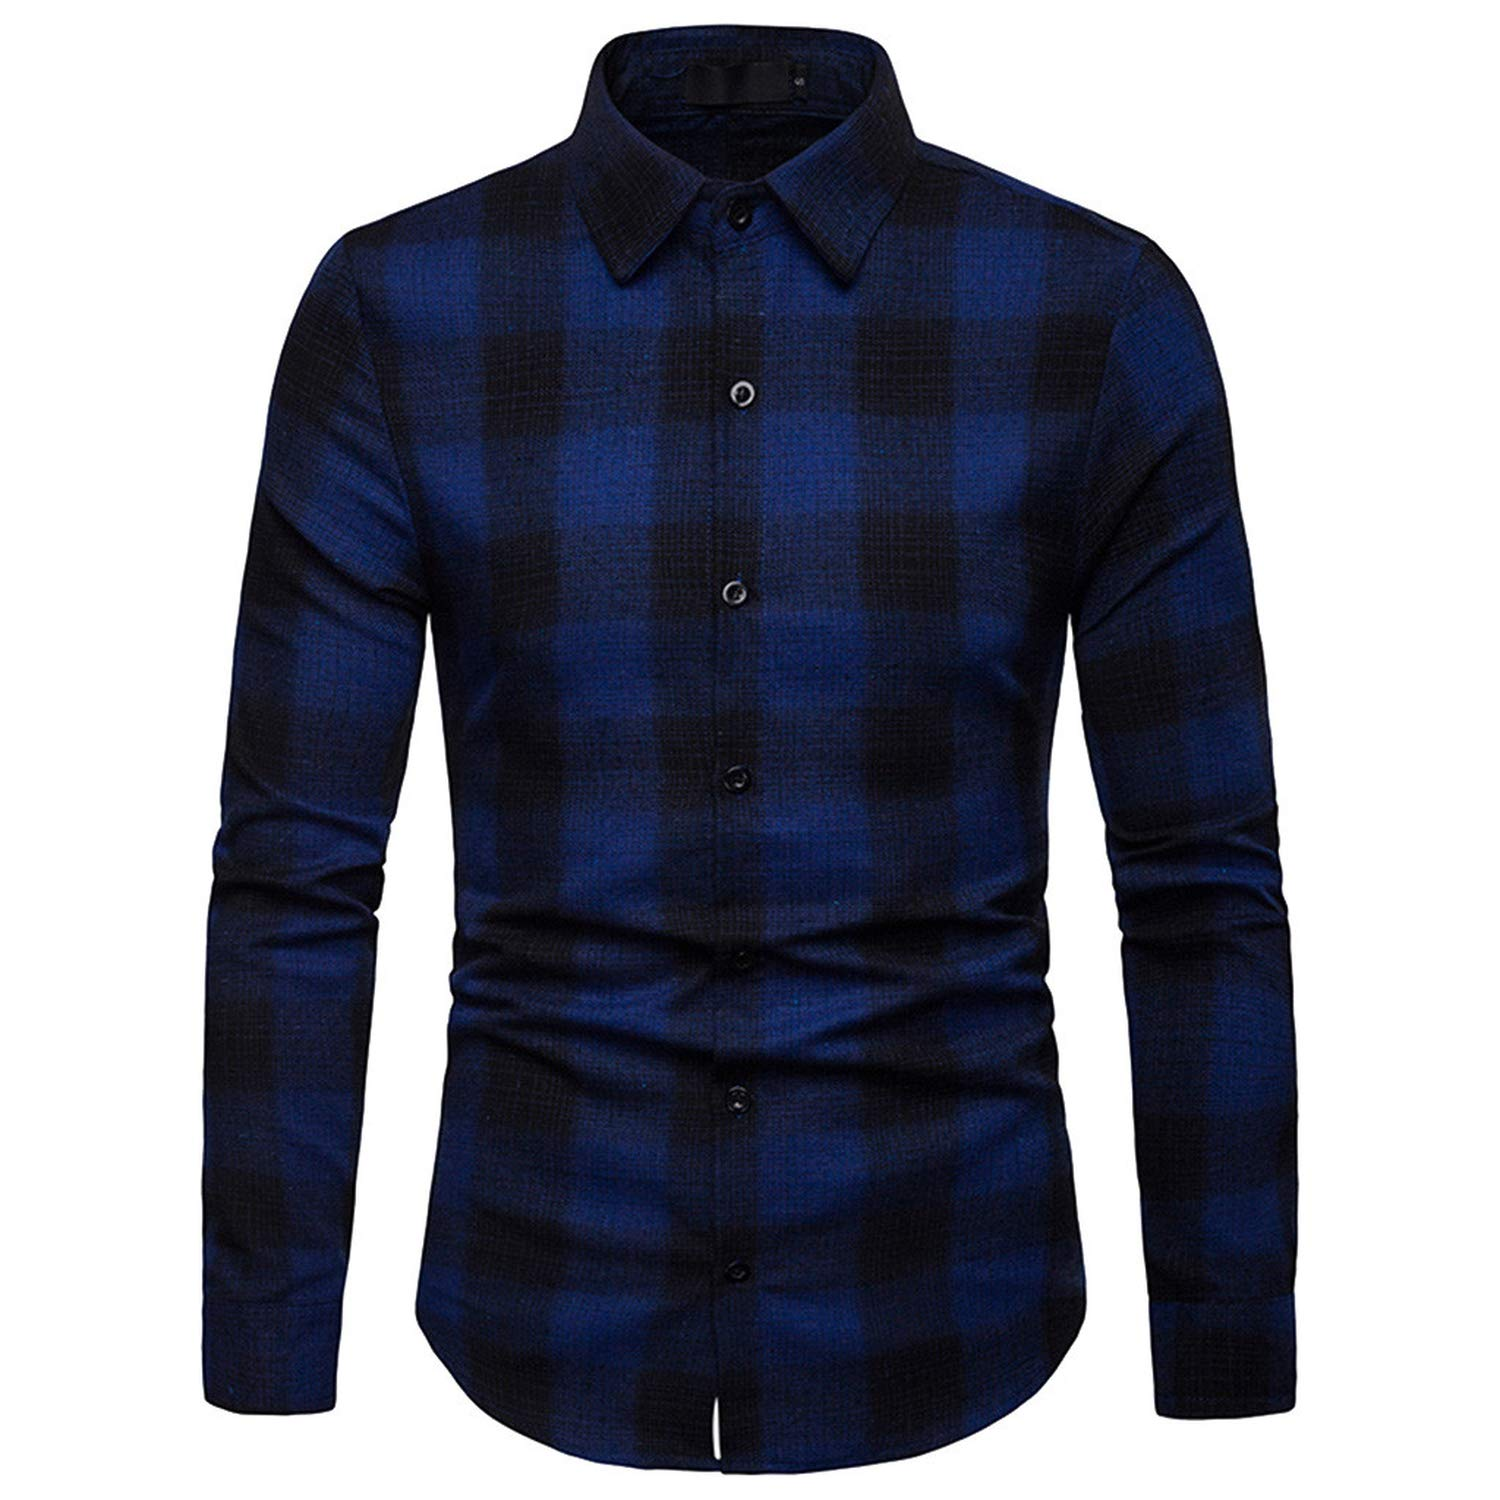 Men 100/% Cotton Spring Autumn Casual Long Sleeve Shirt Soft Comfort Slim Fit Styles Man Clothes,Red,XXL,United States